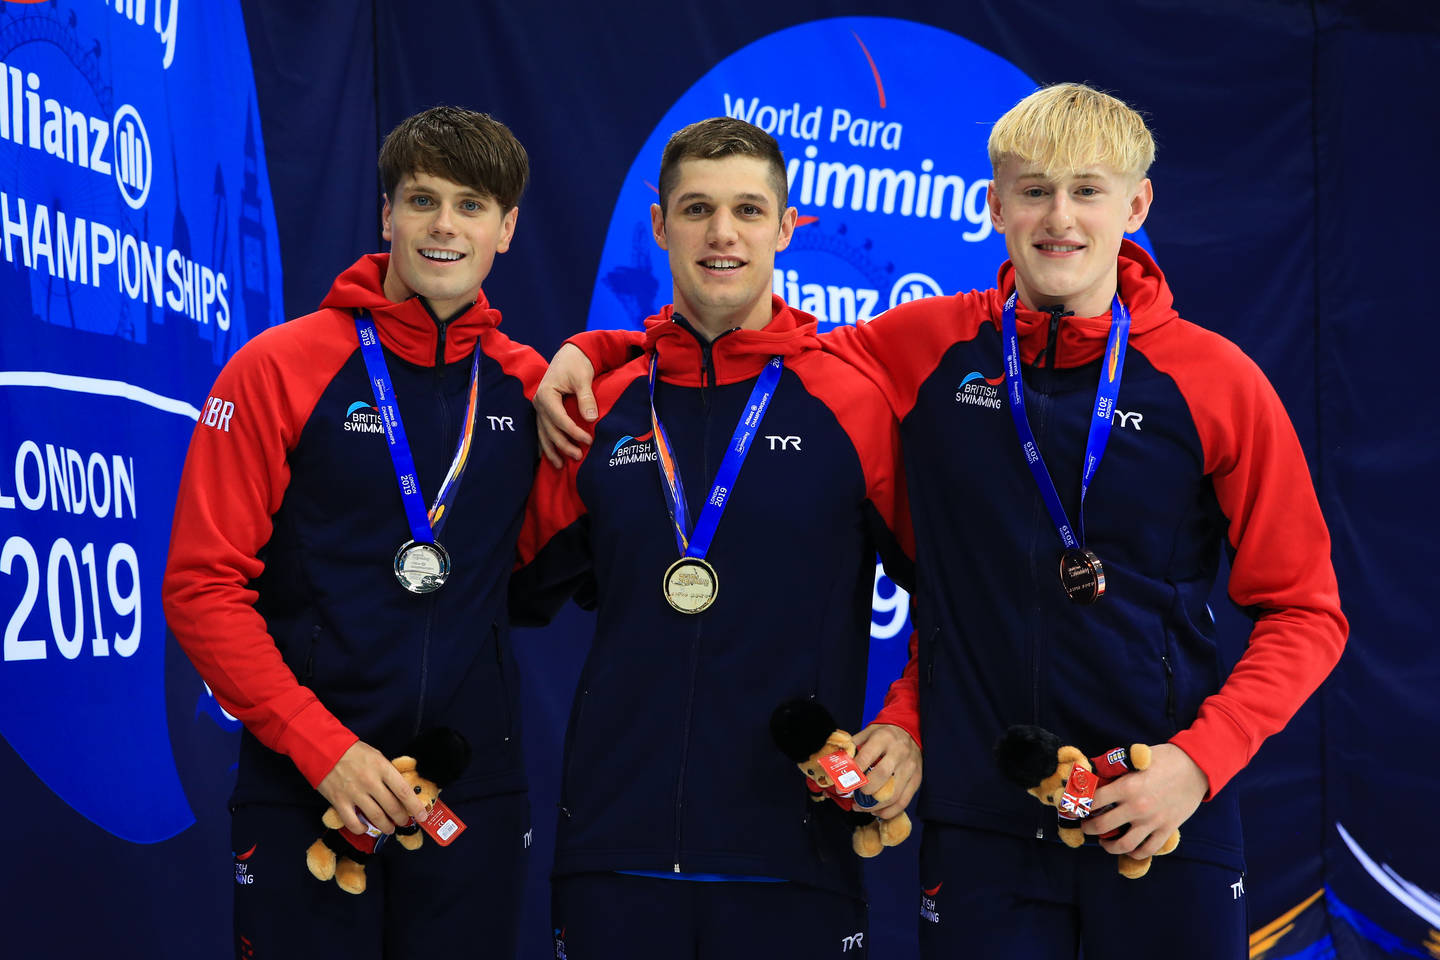 Reece Dunn, Tom Hamer and Jordan Catchpole wear medals on the podium